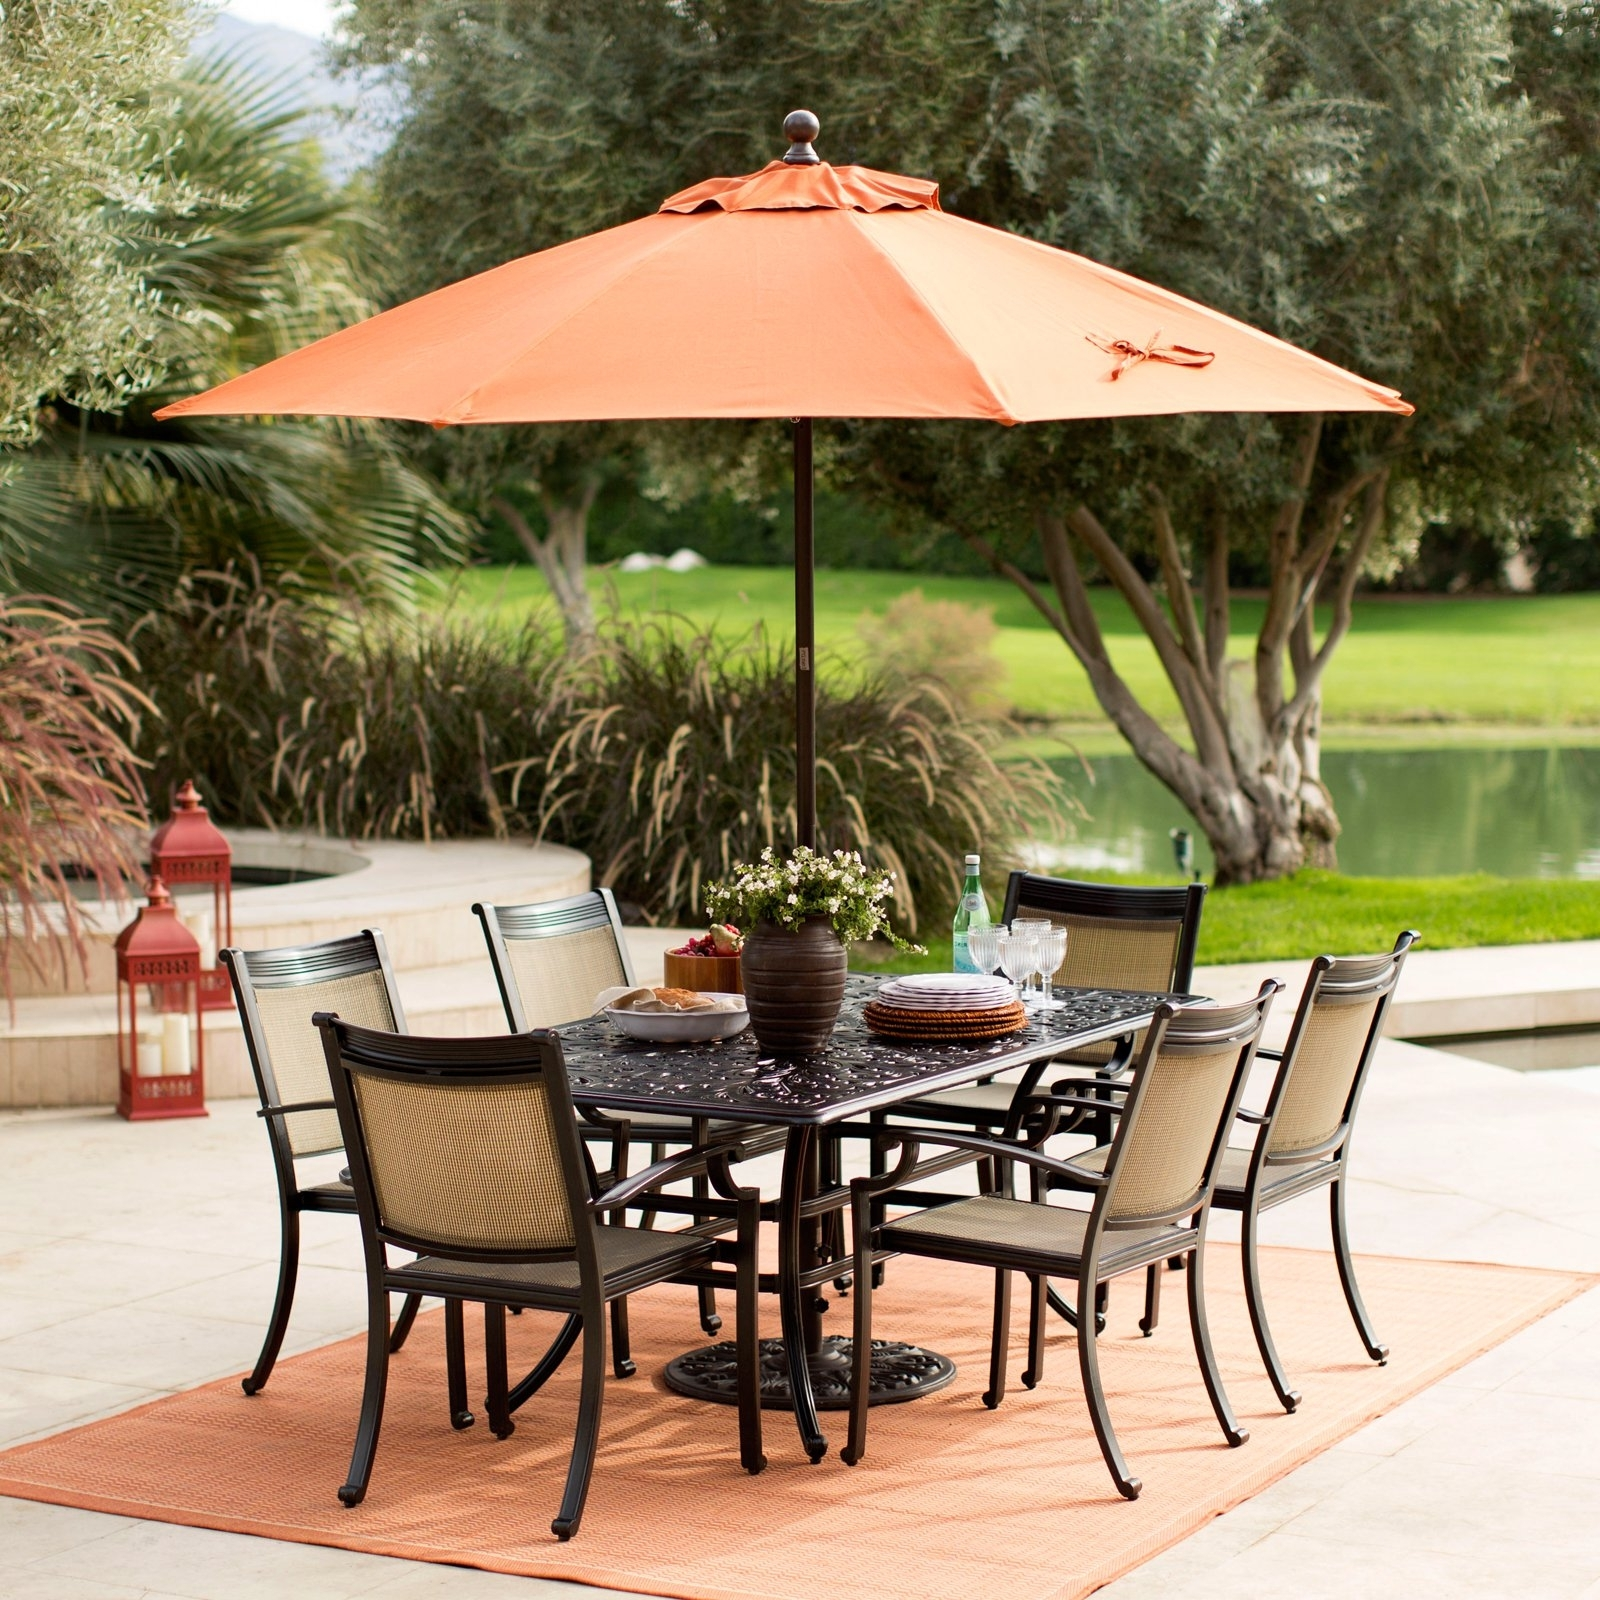 Sunbrella Patio Table Umbrellas In Recent Coral Coast 9 Ft (View 15 of 20)